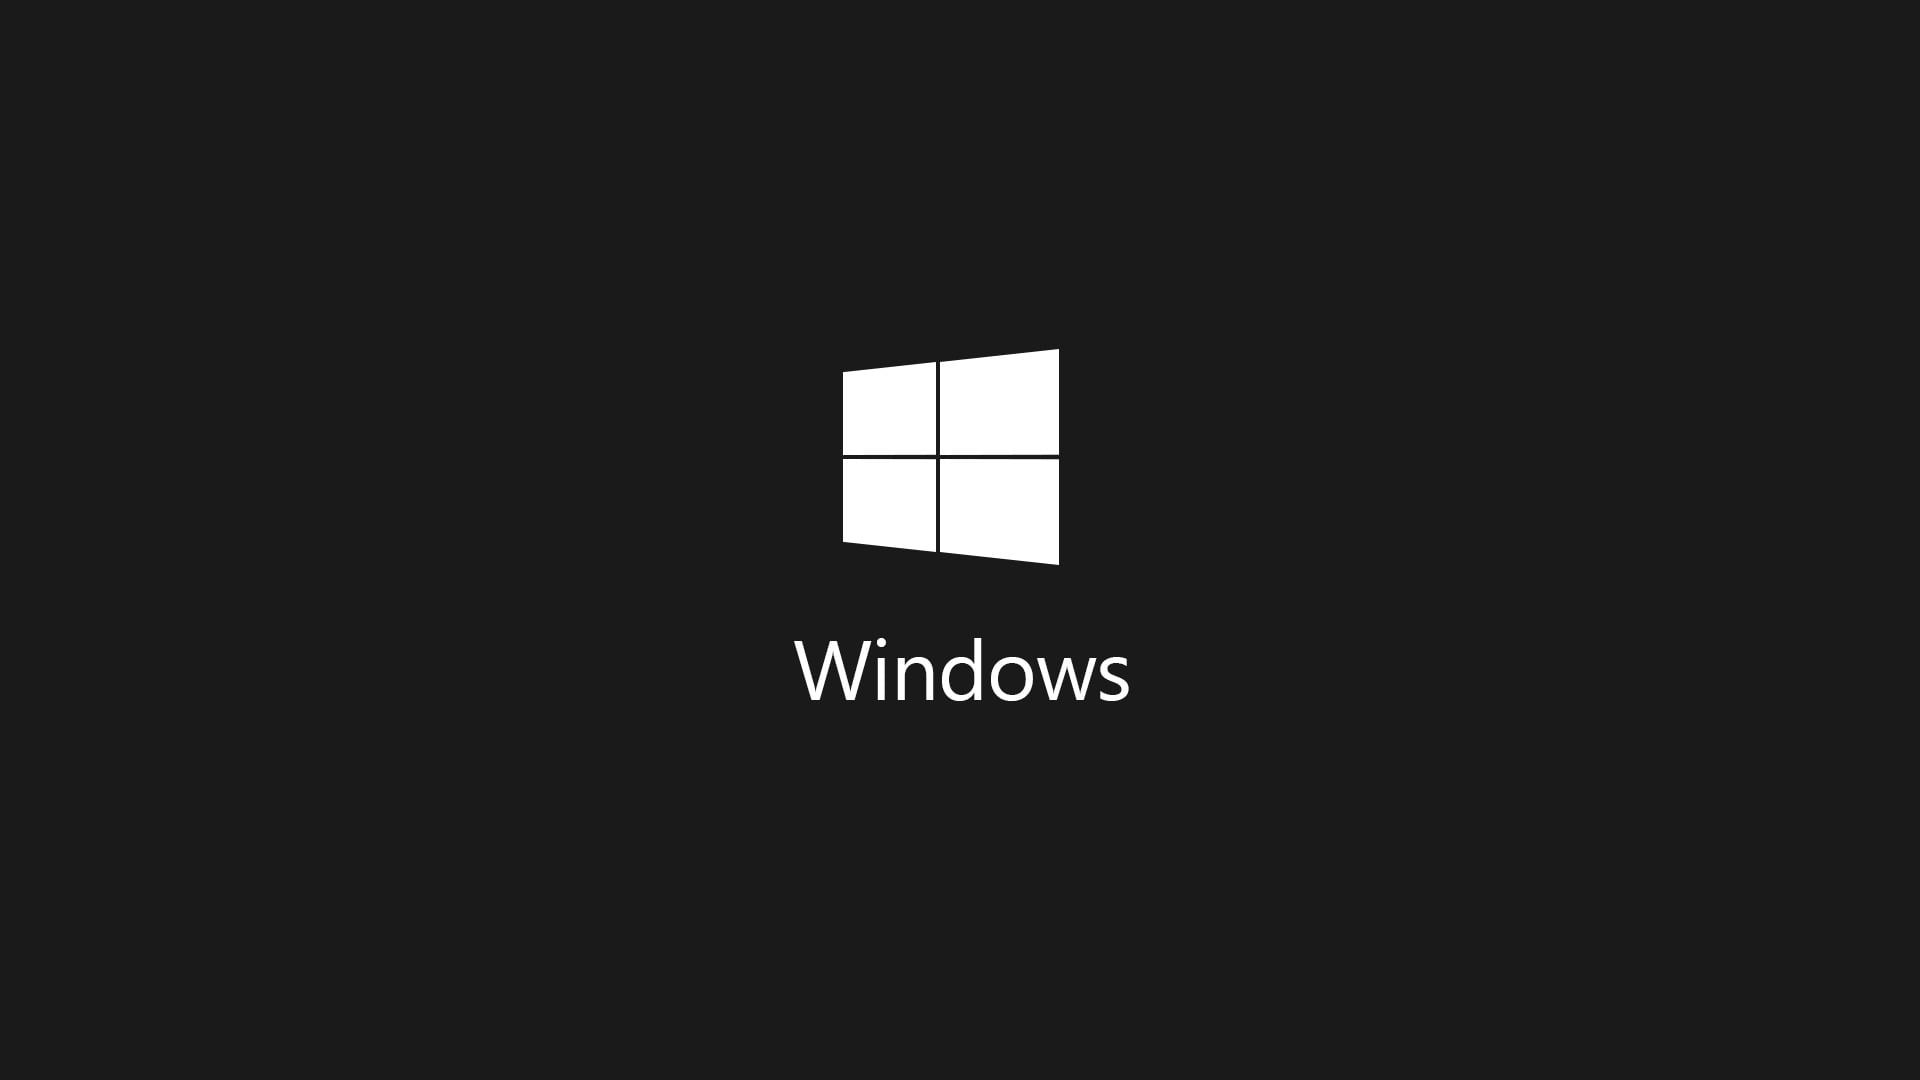 Microsoft Windows logo, Windows logo dark Windows 7